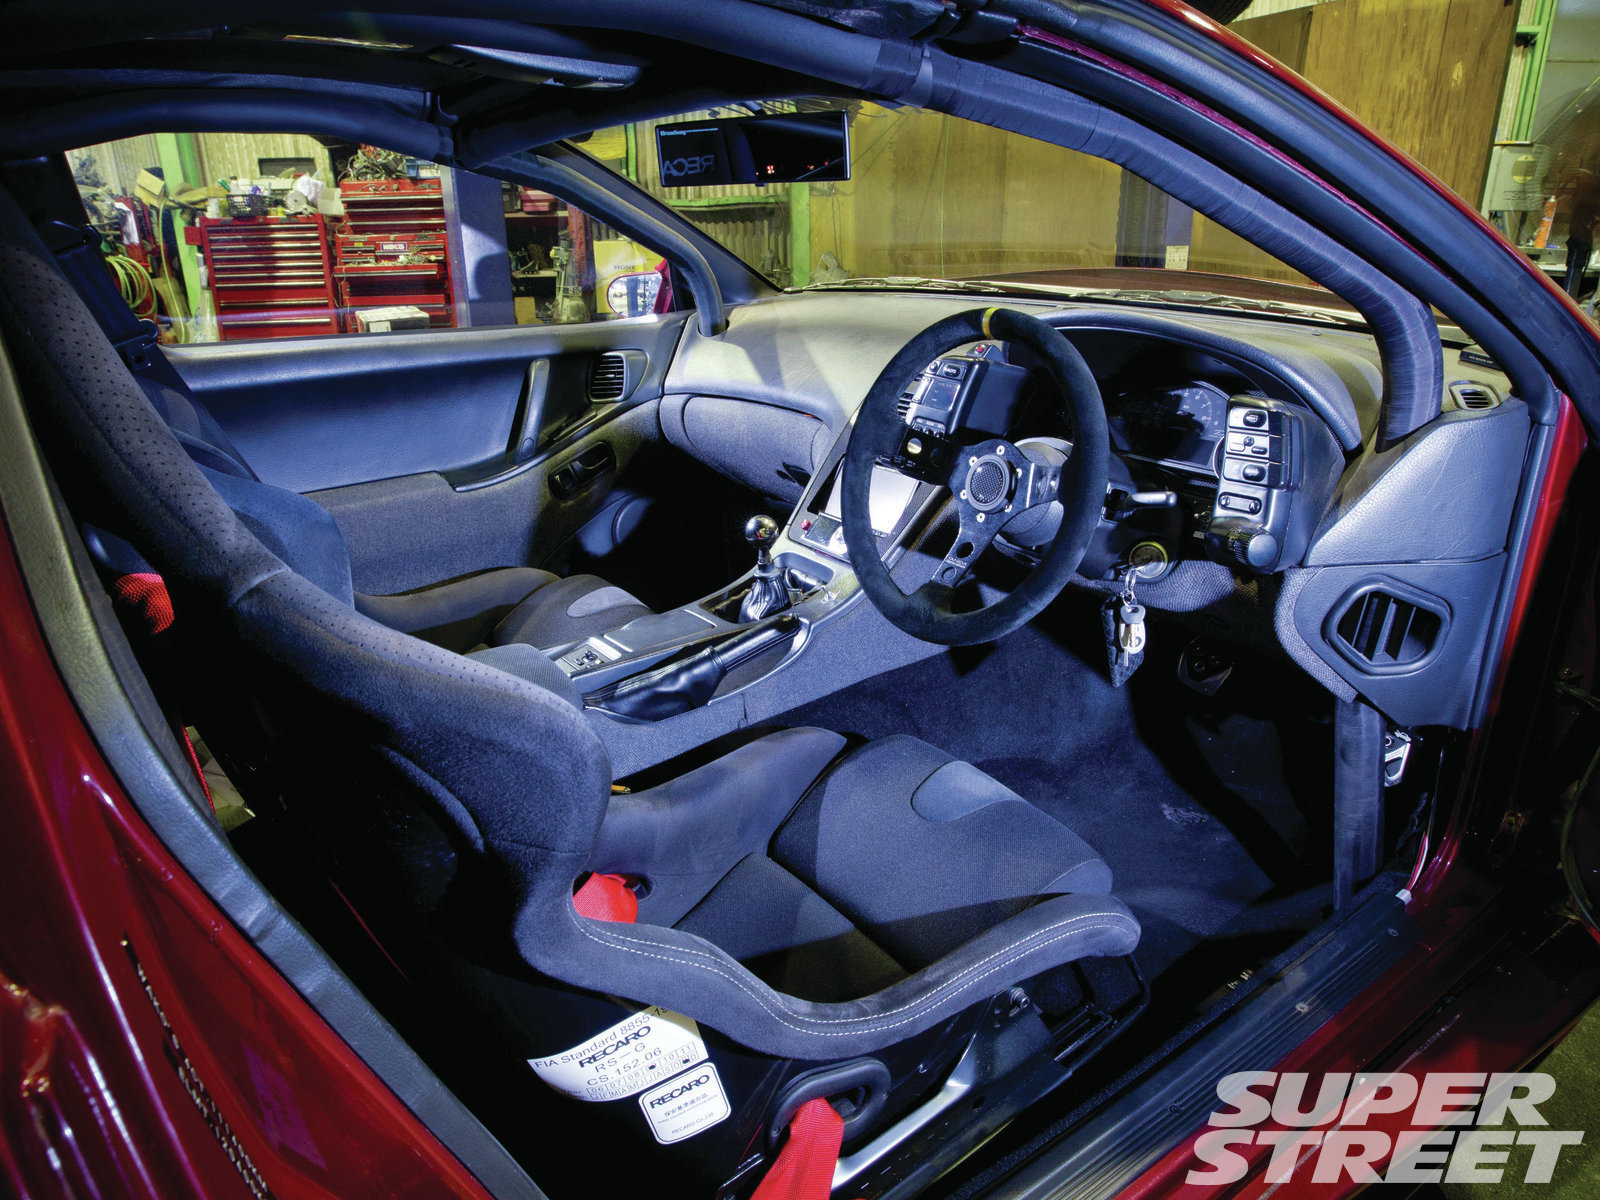 Fairlady Z 300ZX - The Swap Shop Photo & Image Gallery